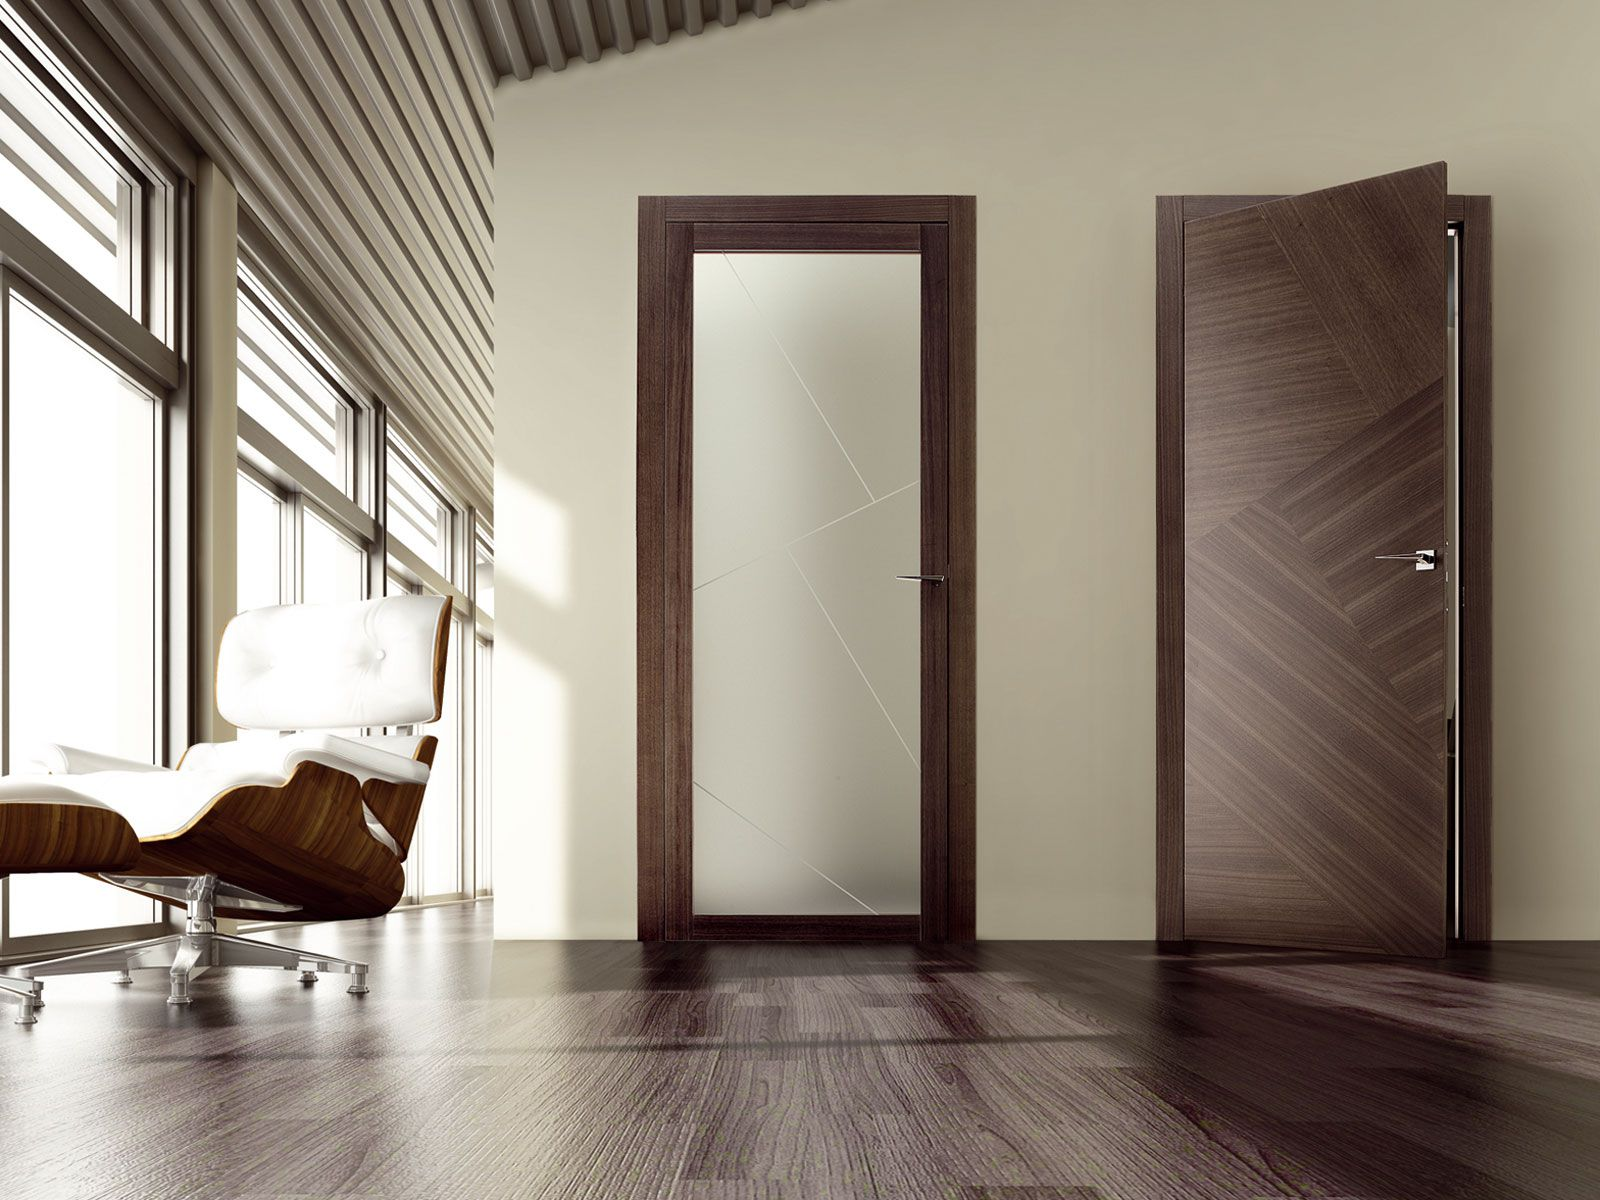 Veneered doors elements arcos flush oak veneered door is for Interior decoration with glass